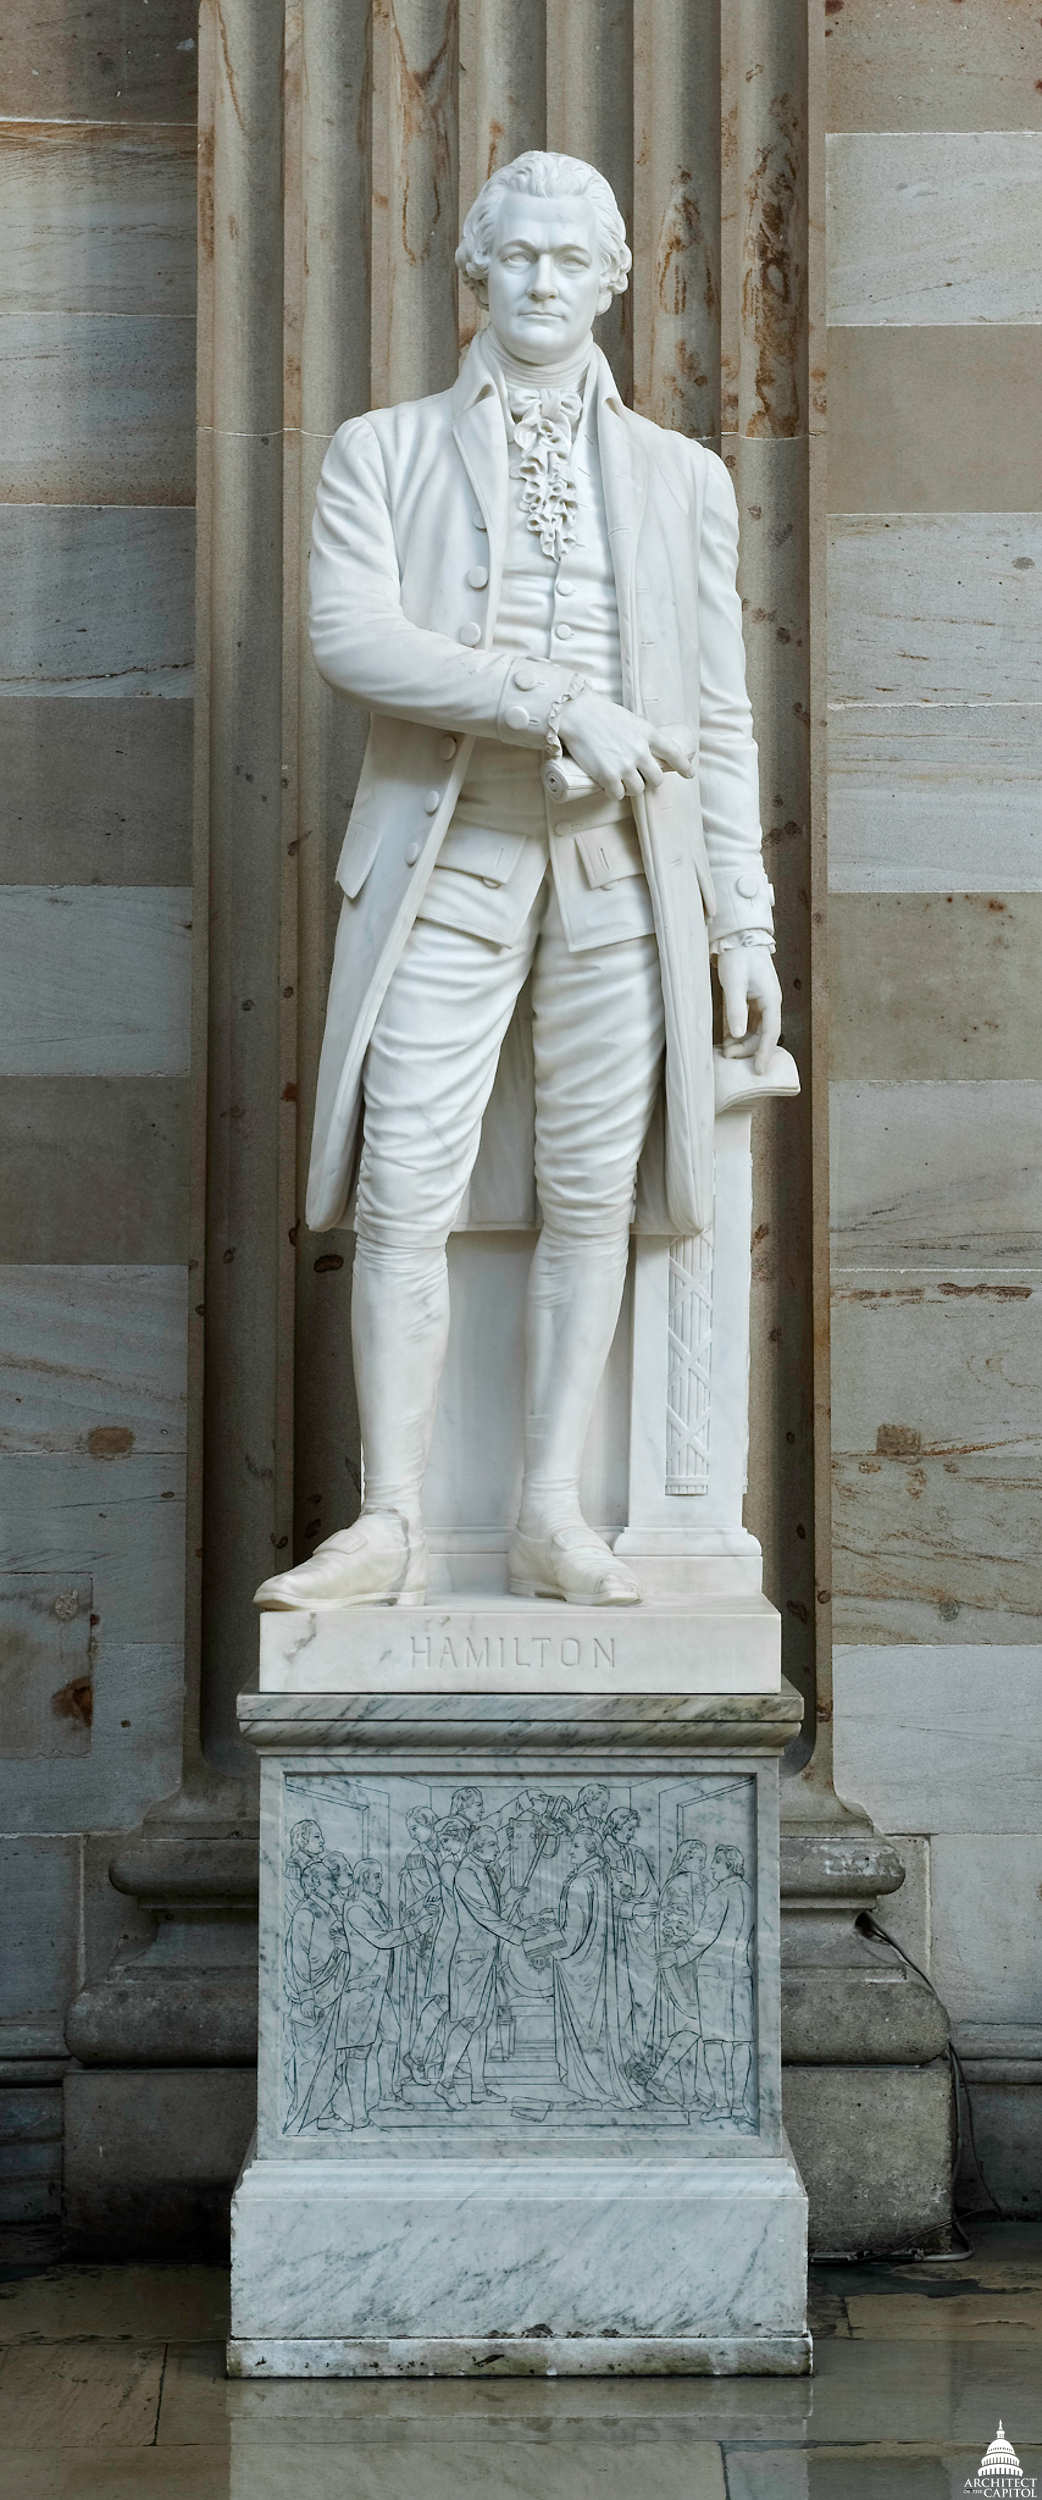 The statue of Alexander Hamilton on display in the Rotunda of the U.S. Capitol emphasizes his role in the framing of the new nation's government.